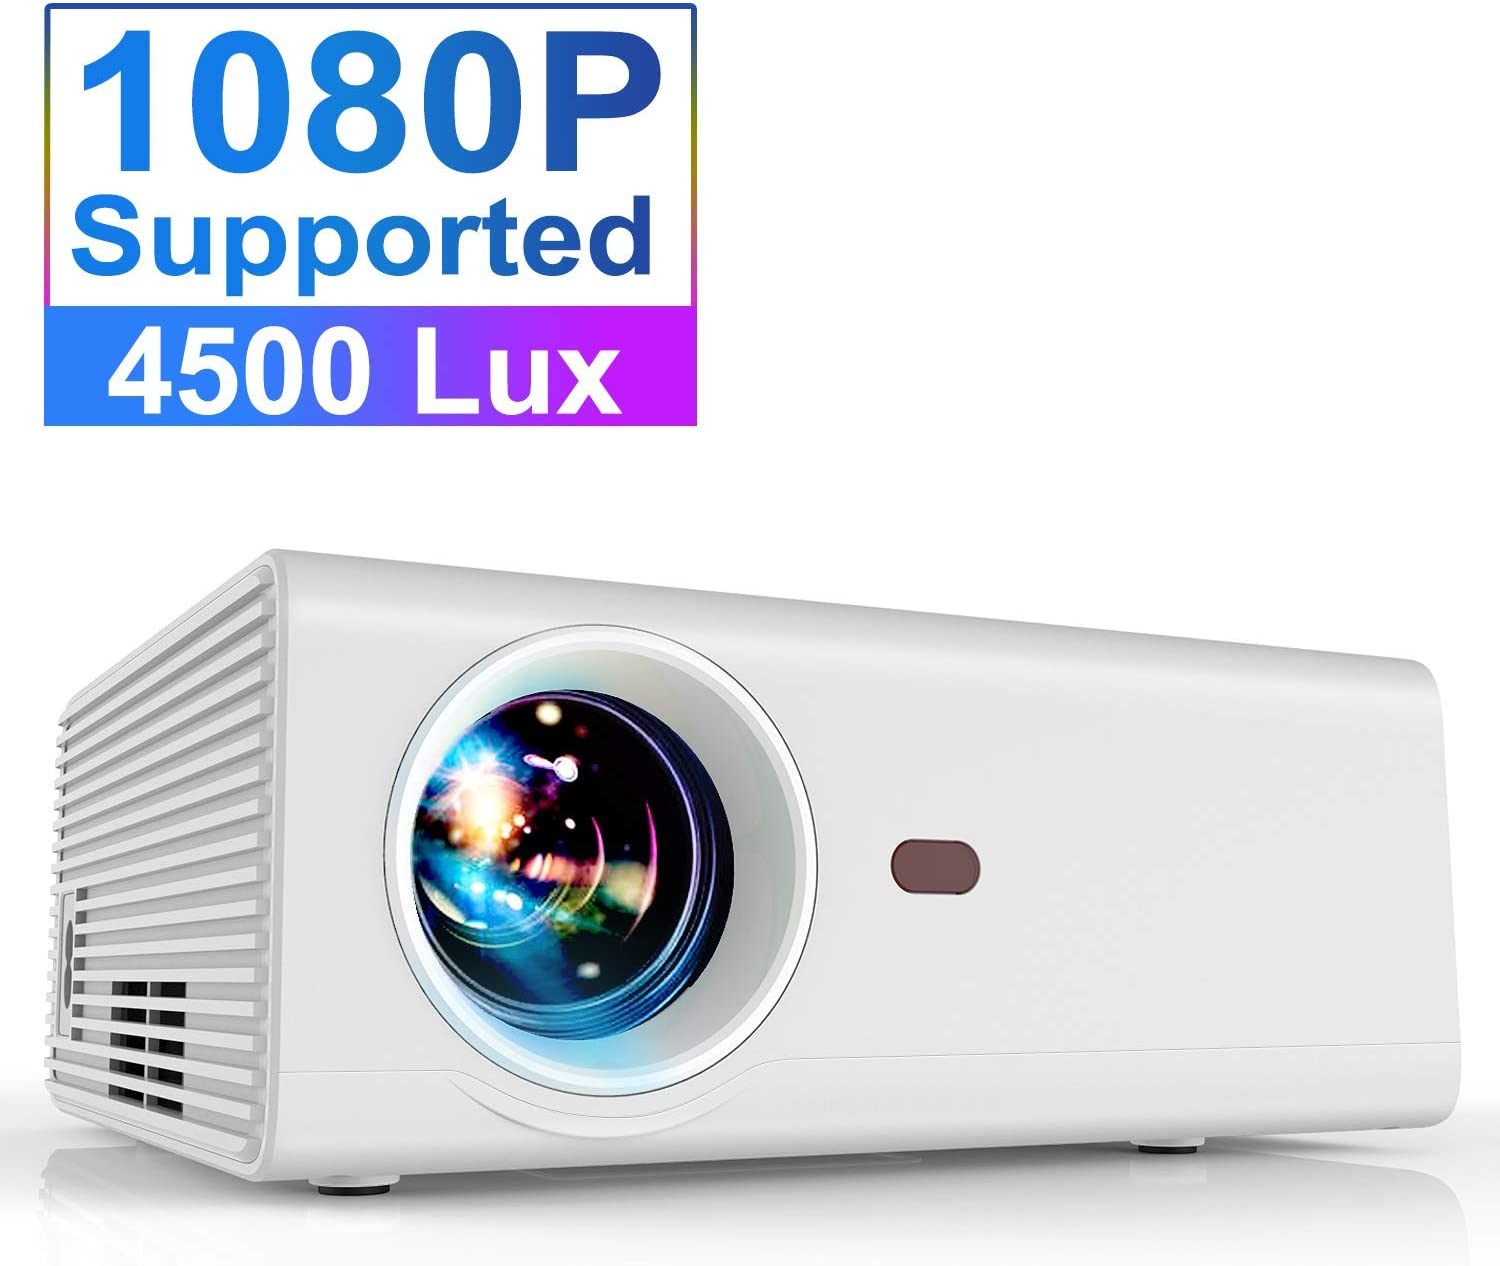 Projector, YABER Portable Projector with 4500LUX 60,000 HRS LED Lamp Life, 1080P and 200'' Supported, Full HD Mini Movie Projector Compatible with Smartphone/Fire Stick/TV/PS4 Ideal for Home Theater